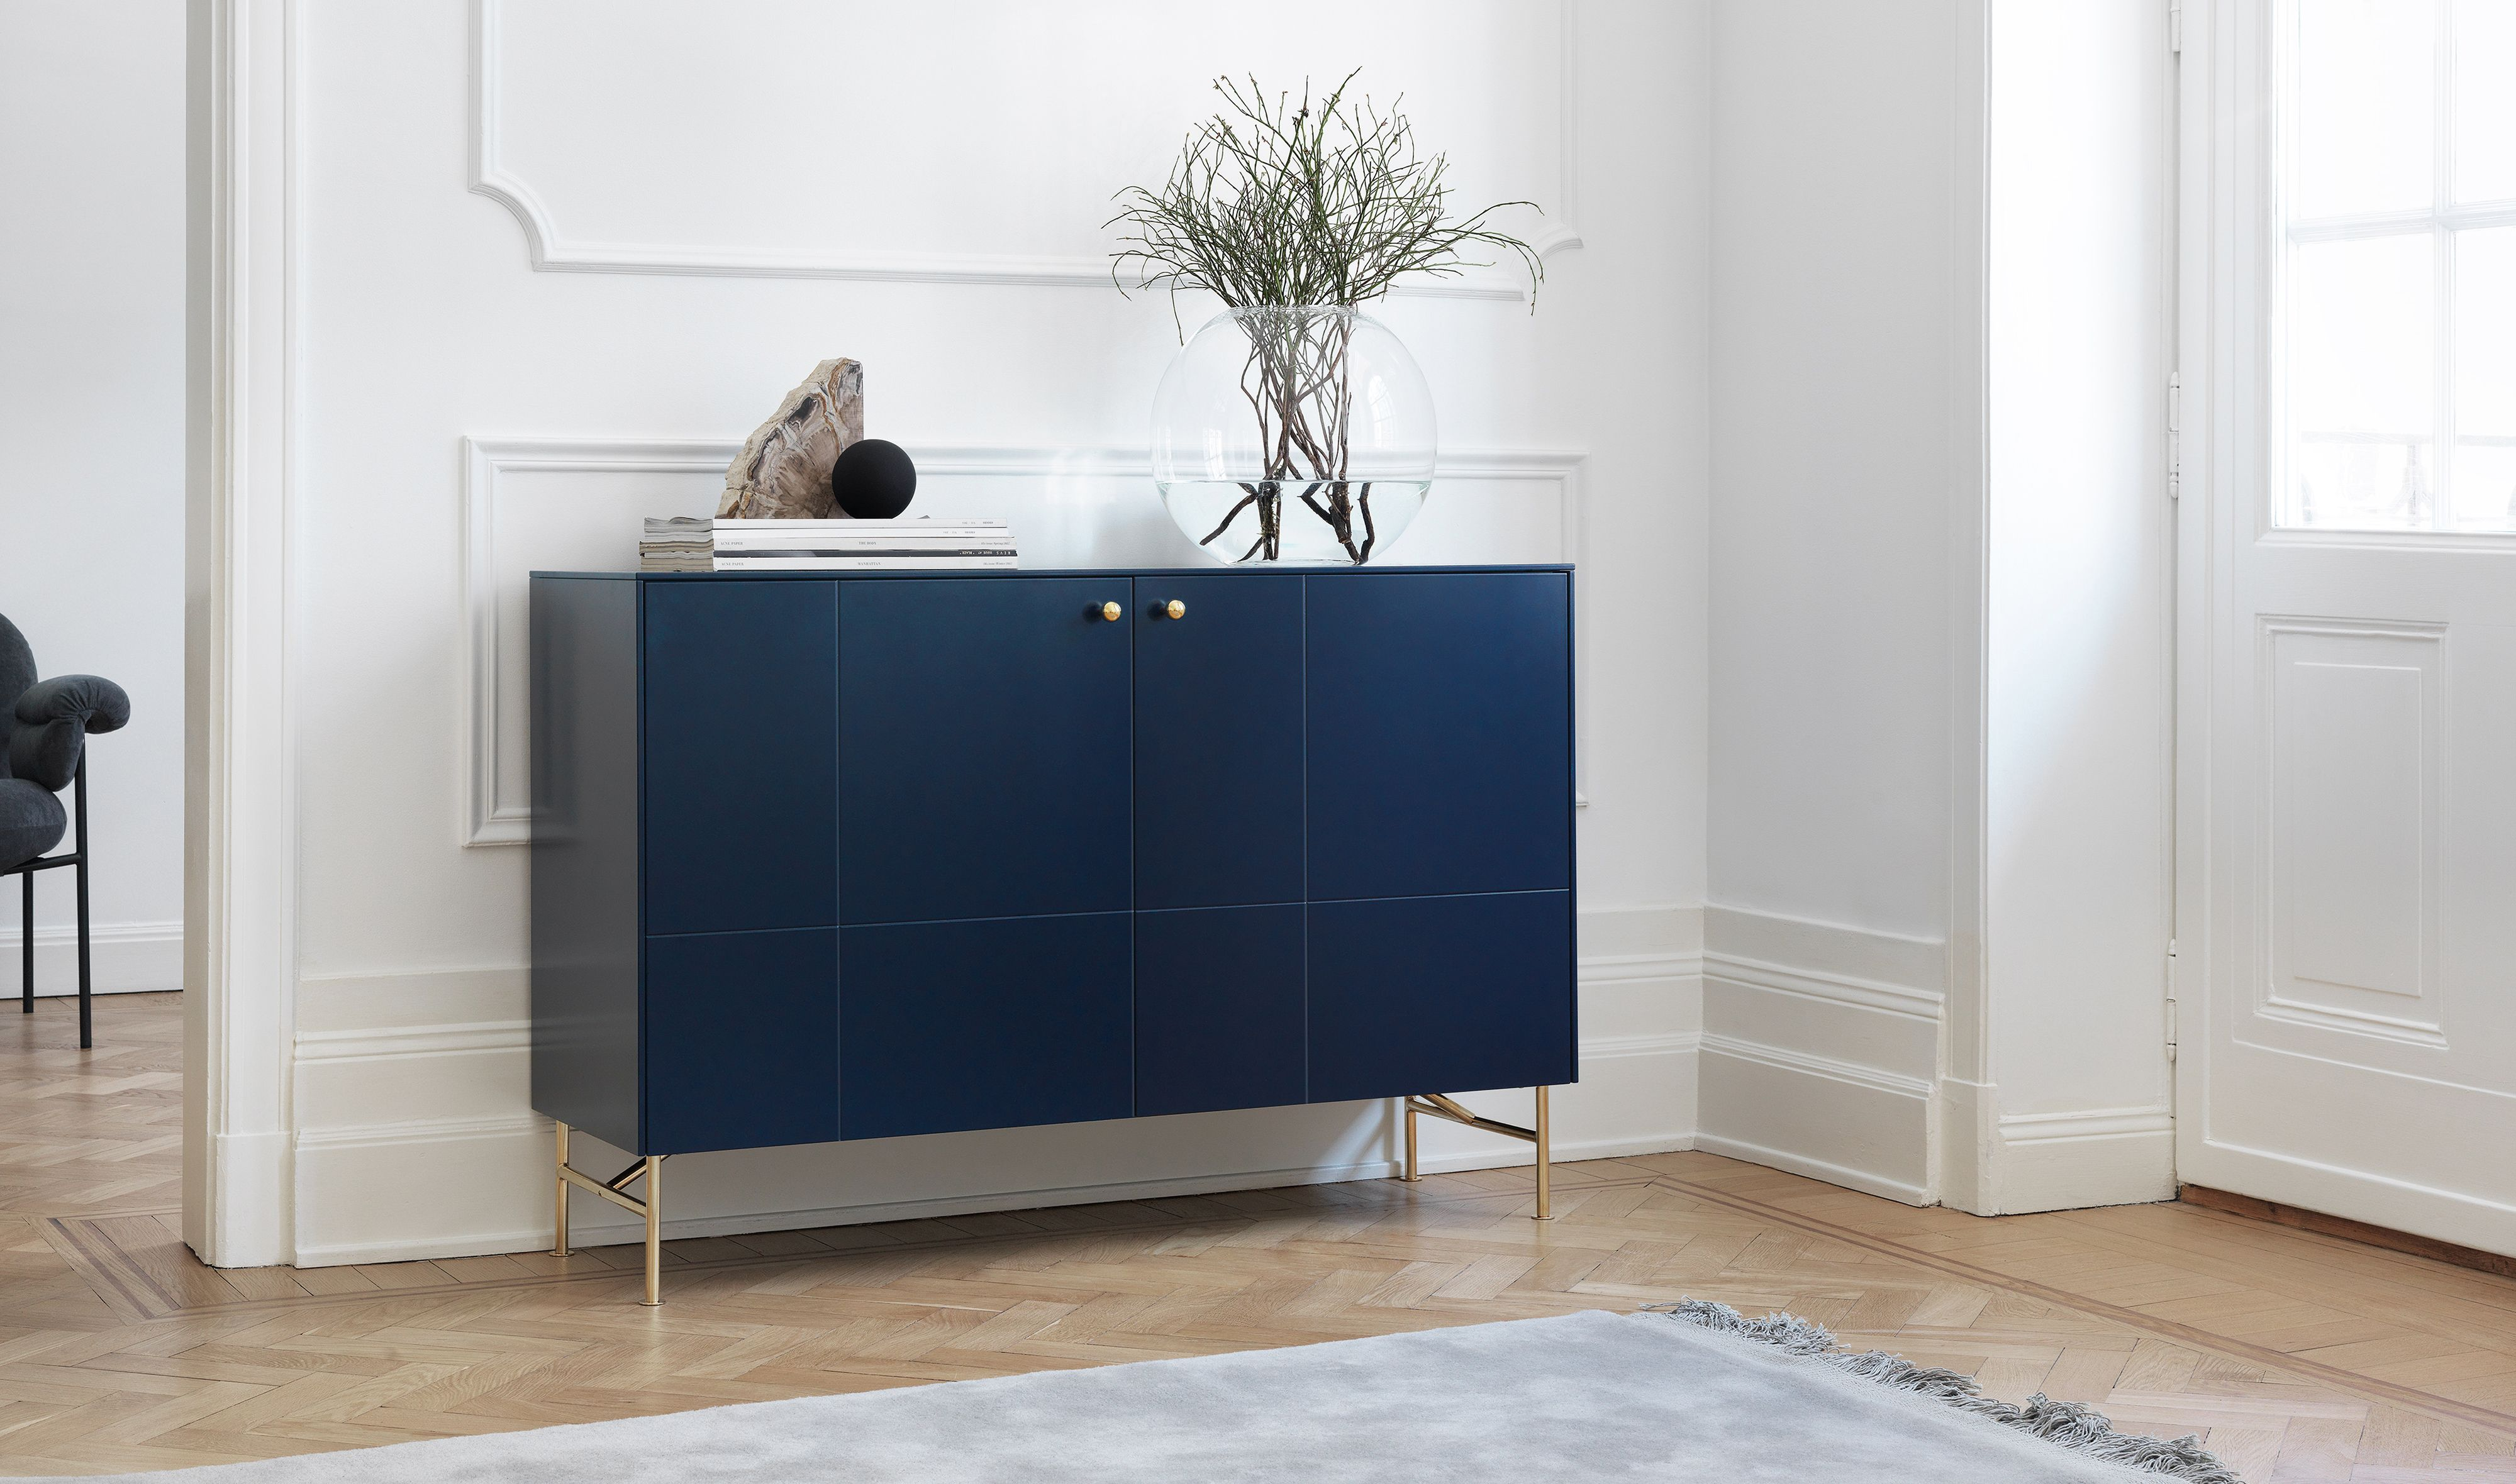 Credenza Ikea Canada : Superfront sideboard built on the ikea cabinet frame bestå. front in